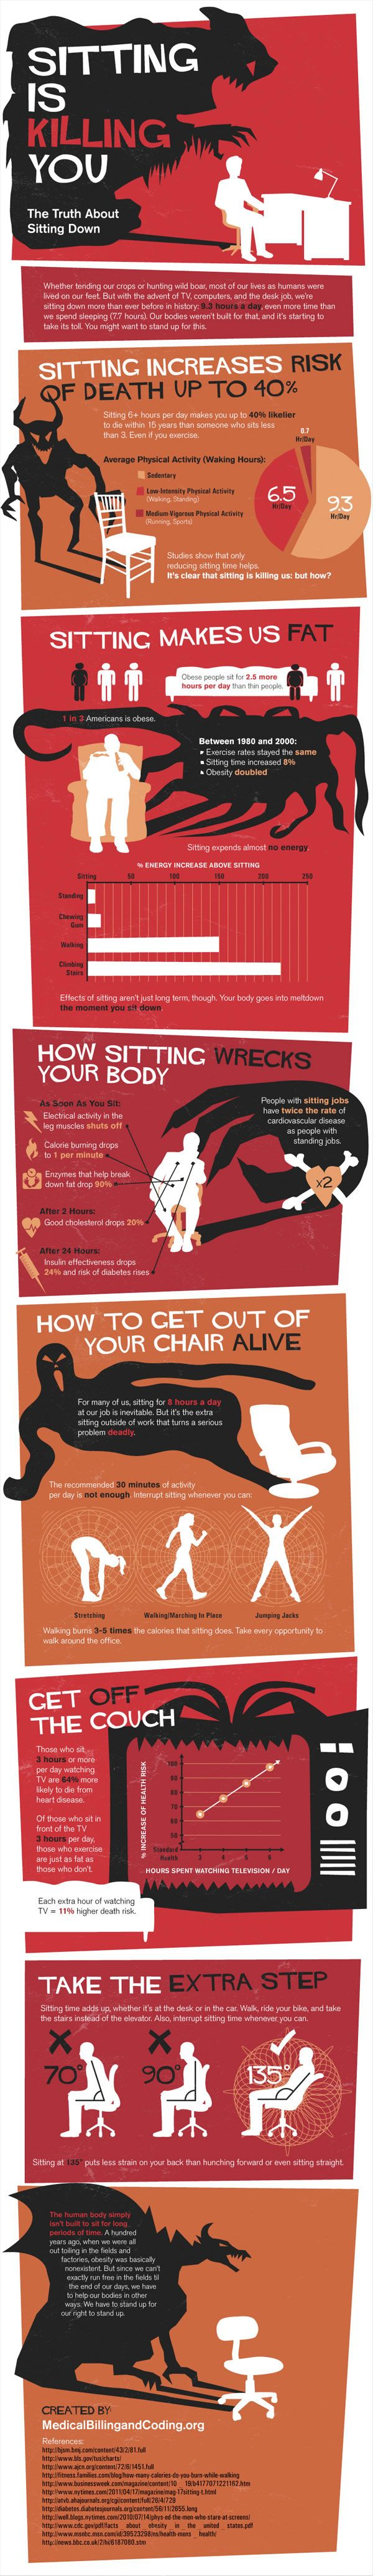 Just How Dangerous Is Sitting All Day?